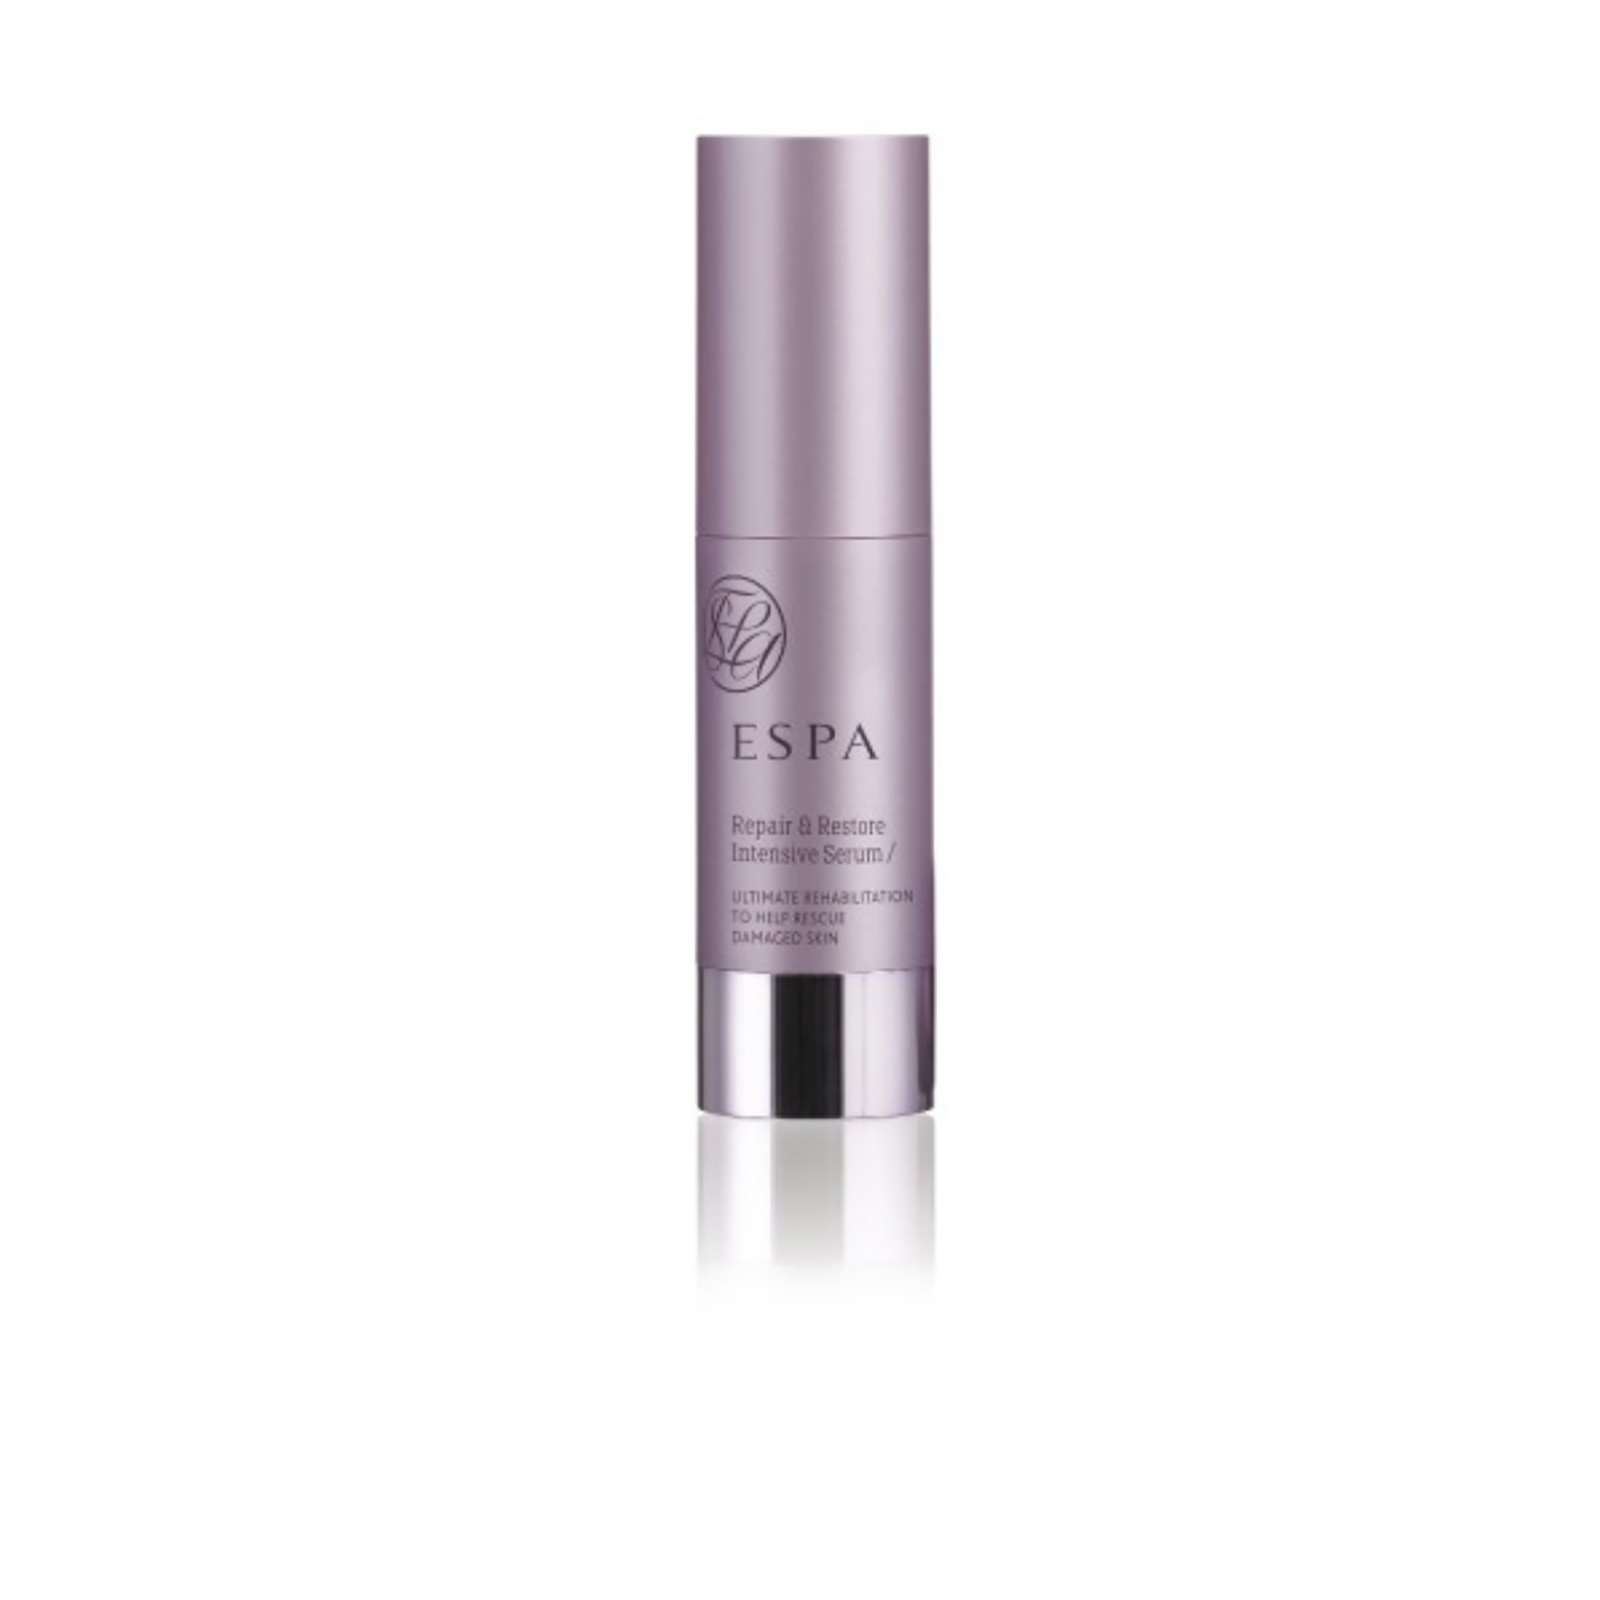 ESPA Repair & Restore Intensive Serum (25ml)